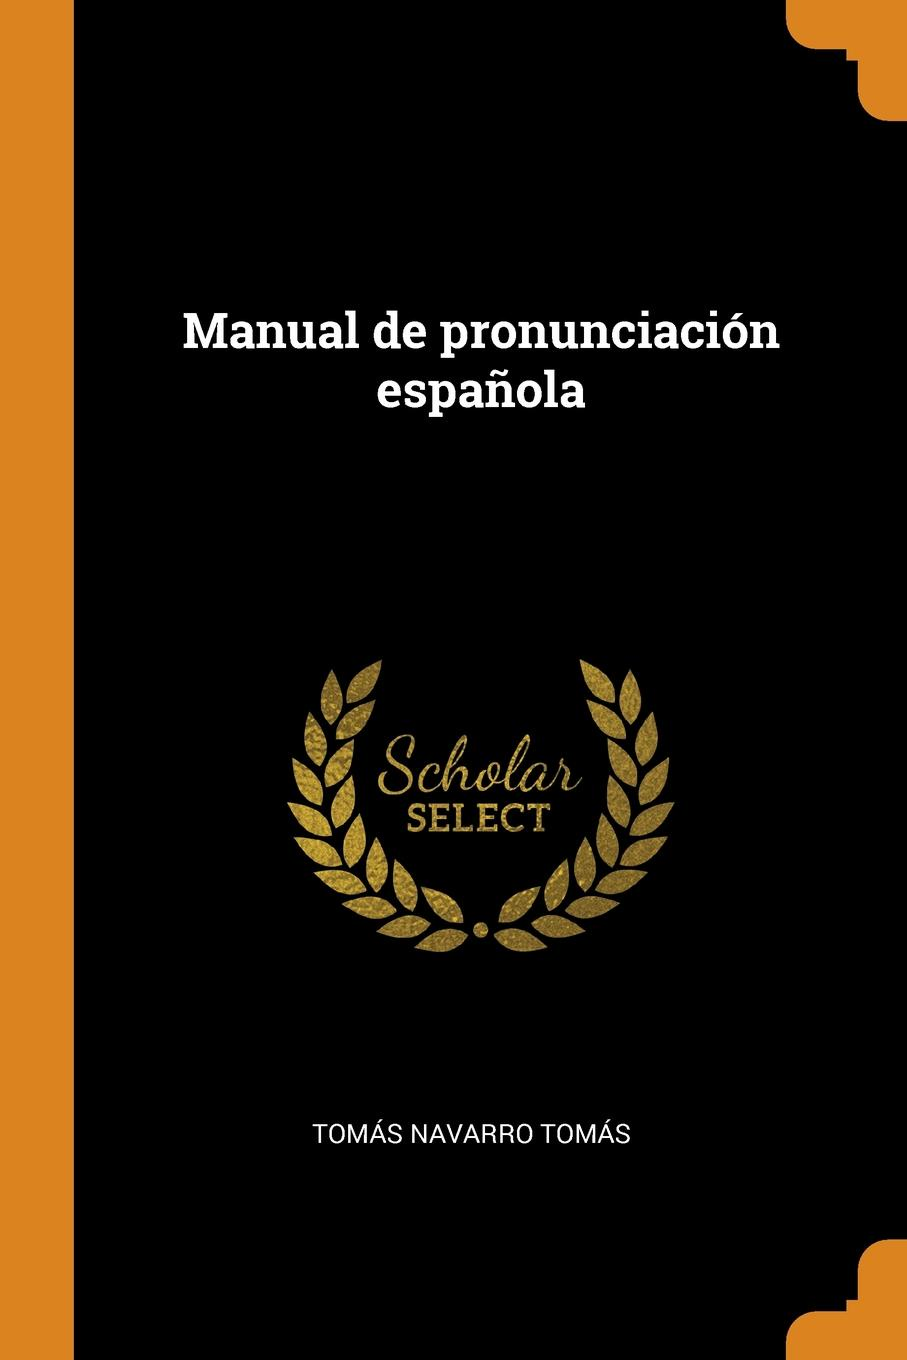 Manual de pronunciacion espanola